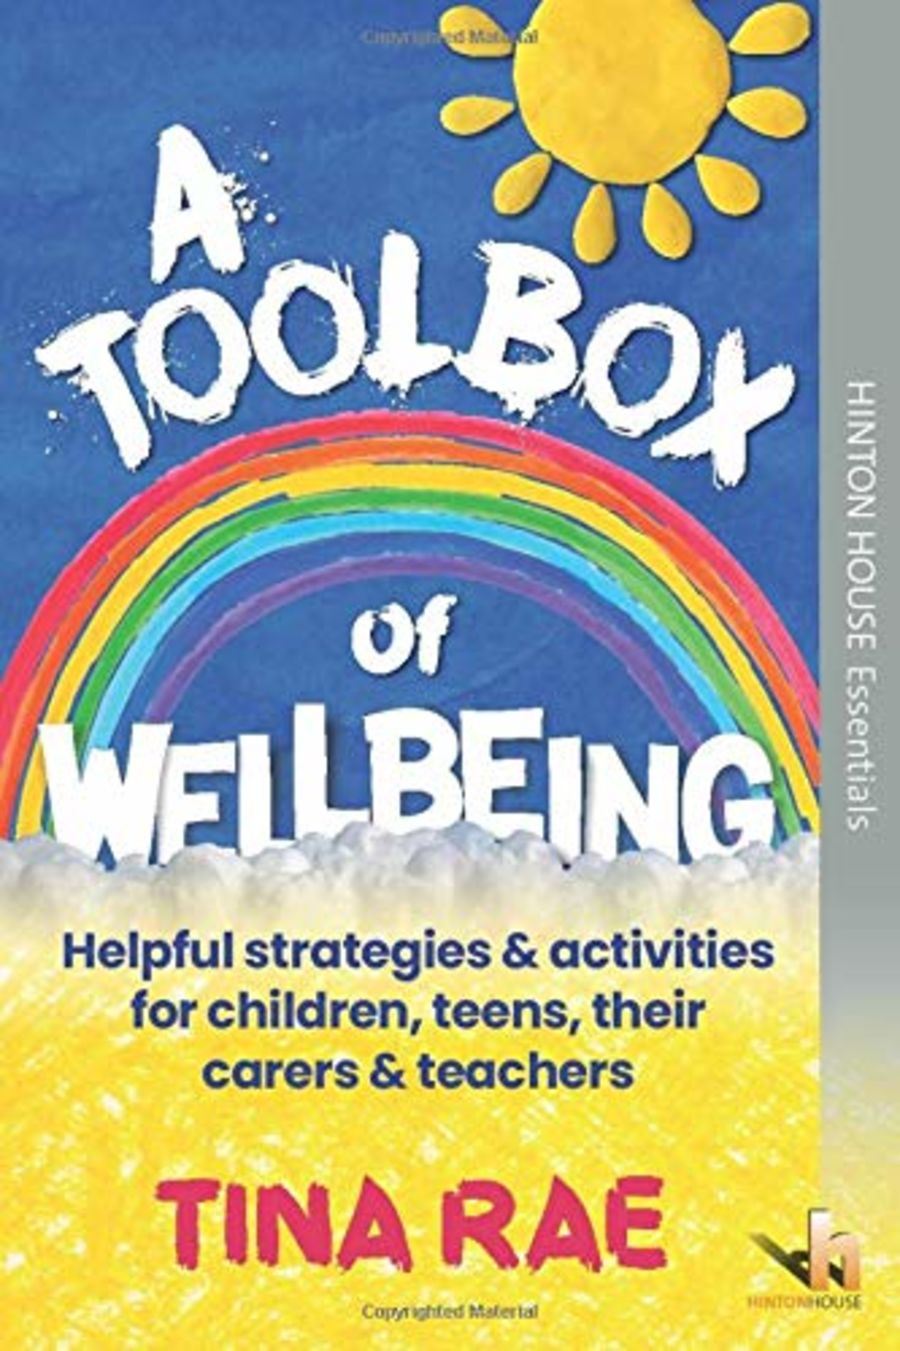 A Toolbox of Wellbeing